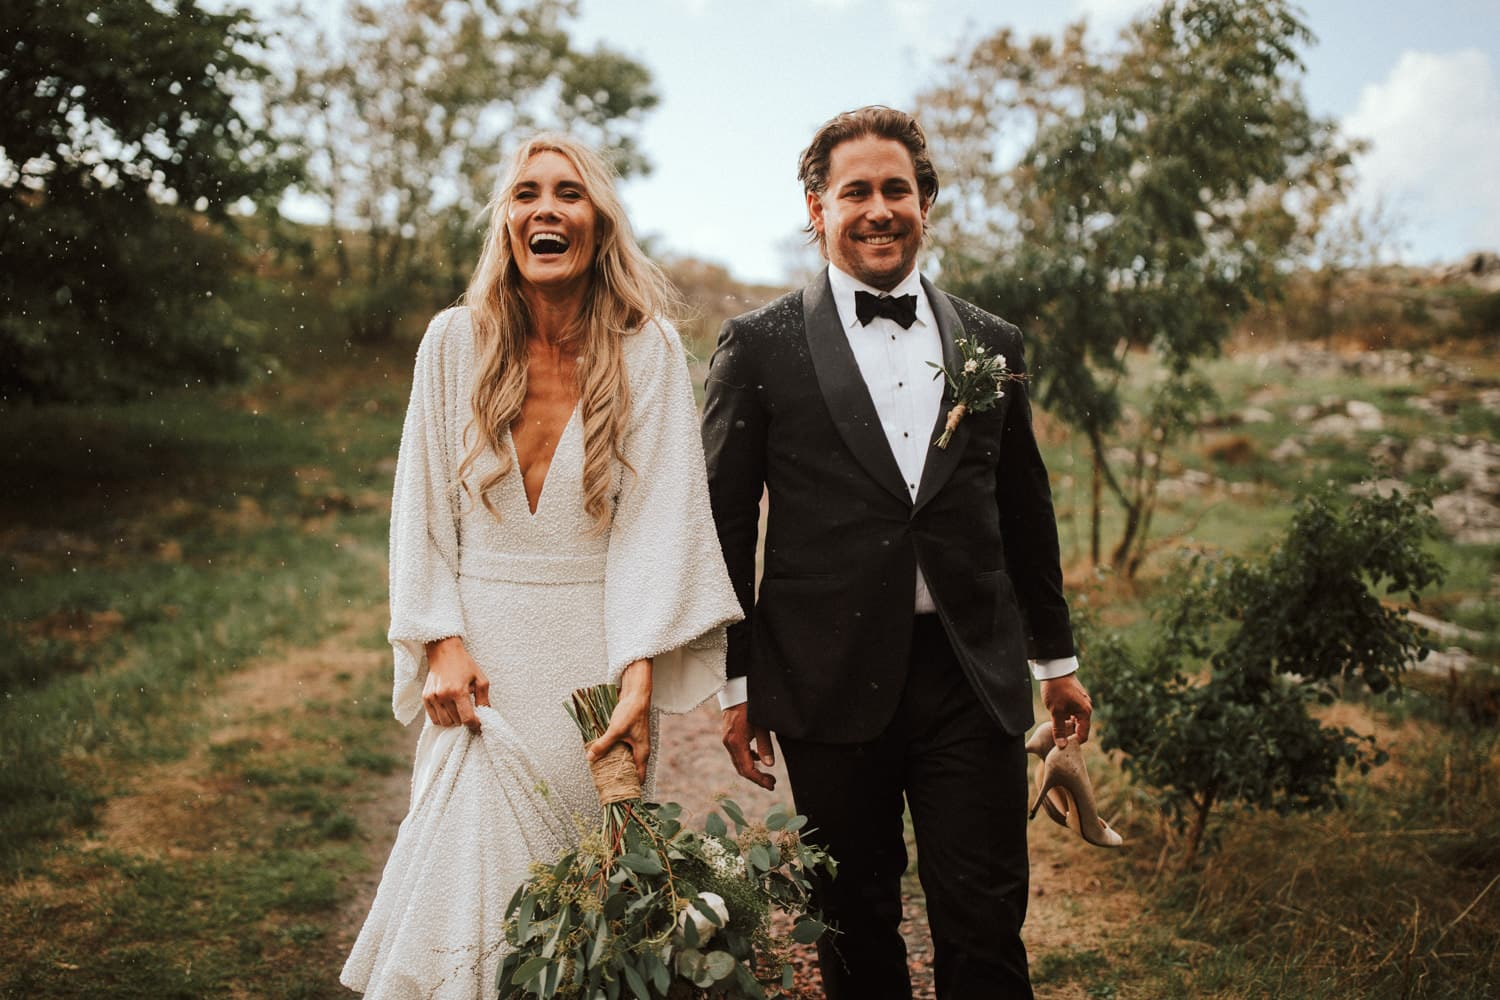 A wedding couple is walking down a path and laughing.